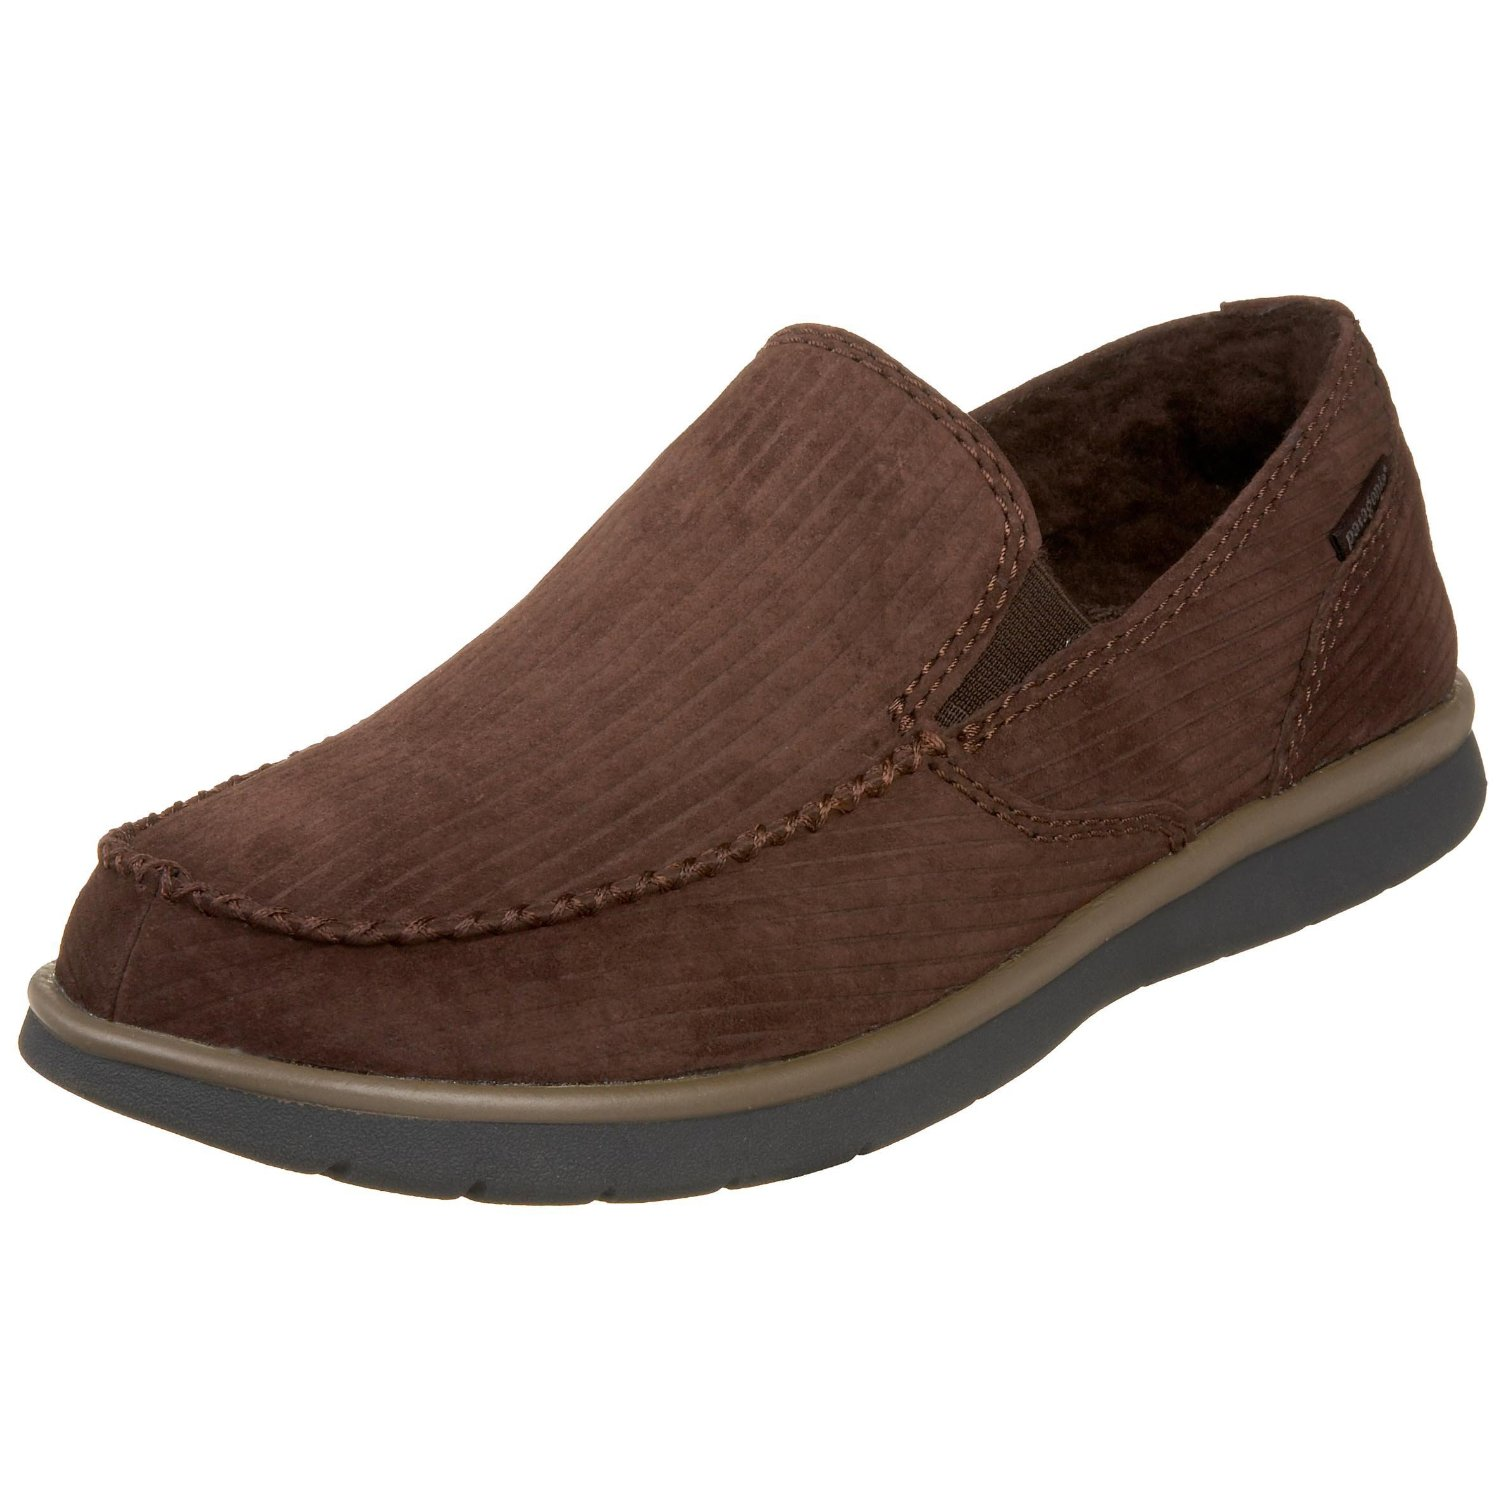 patagonia mens moc fleece lined shoe in brown for